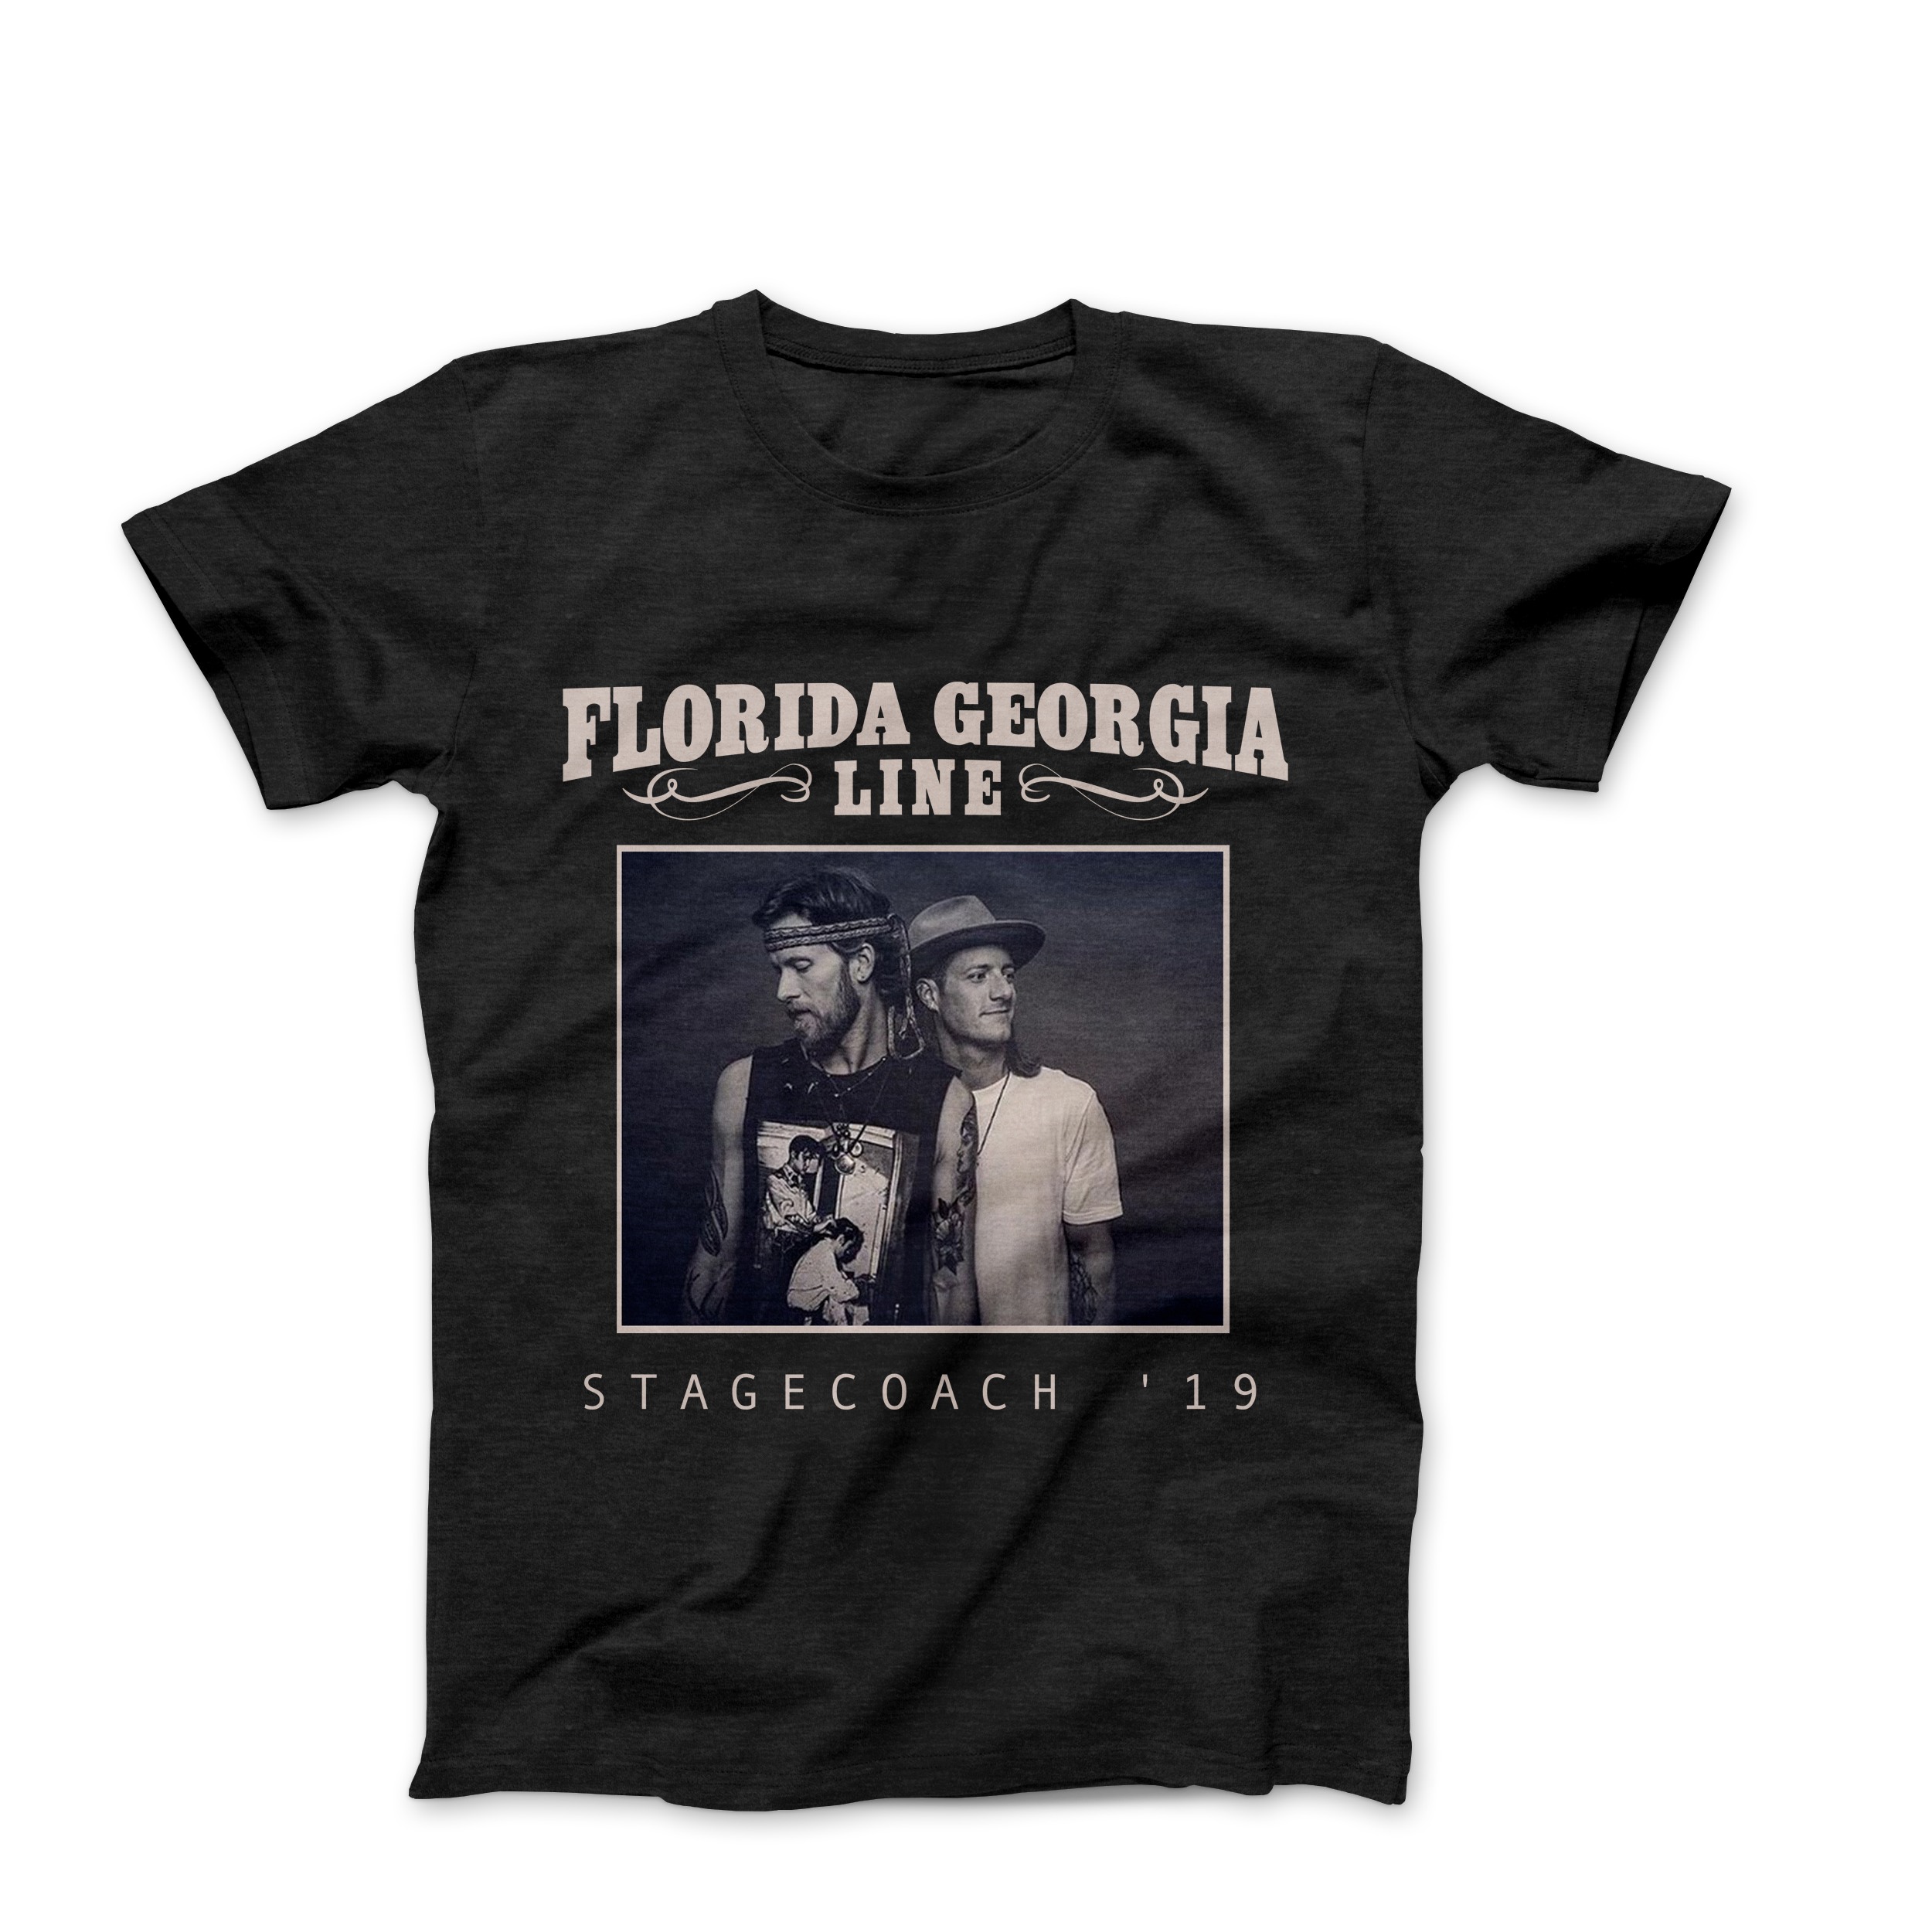 fgl_stagecoach(1).png